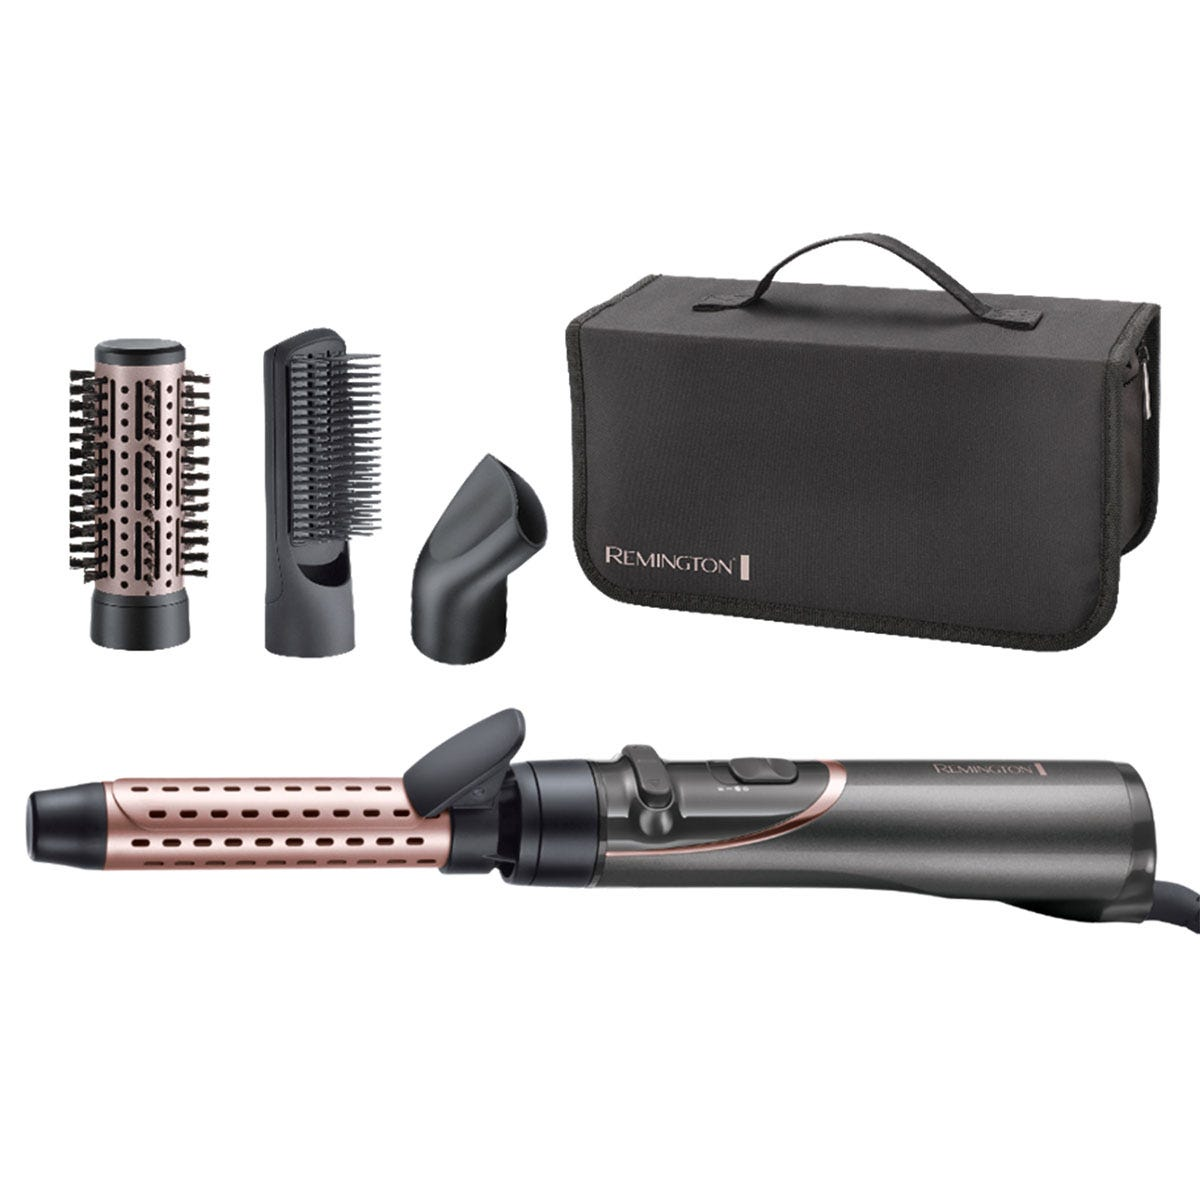 Remington AS8606 800W Curl & Straight Confidence Rotating Hot Air Styler - Grey & Pink